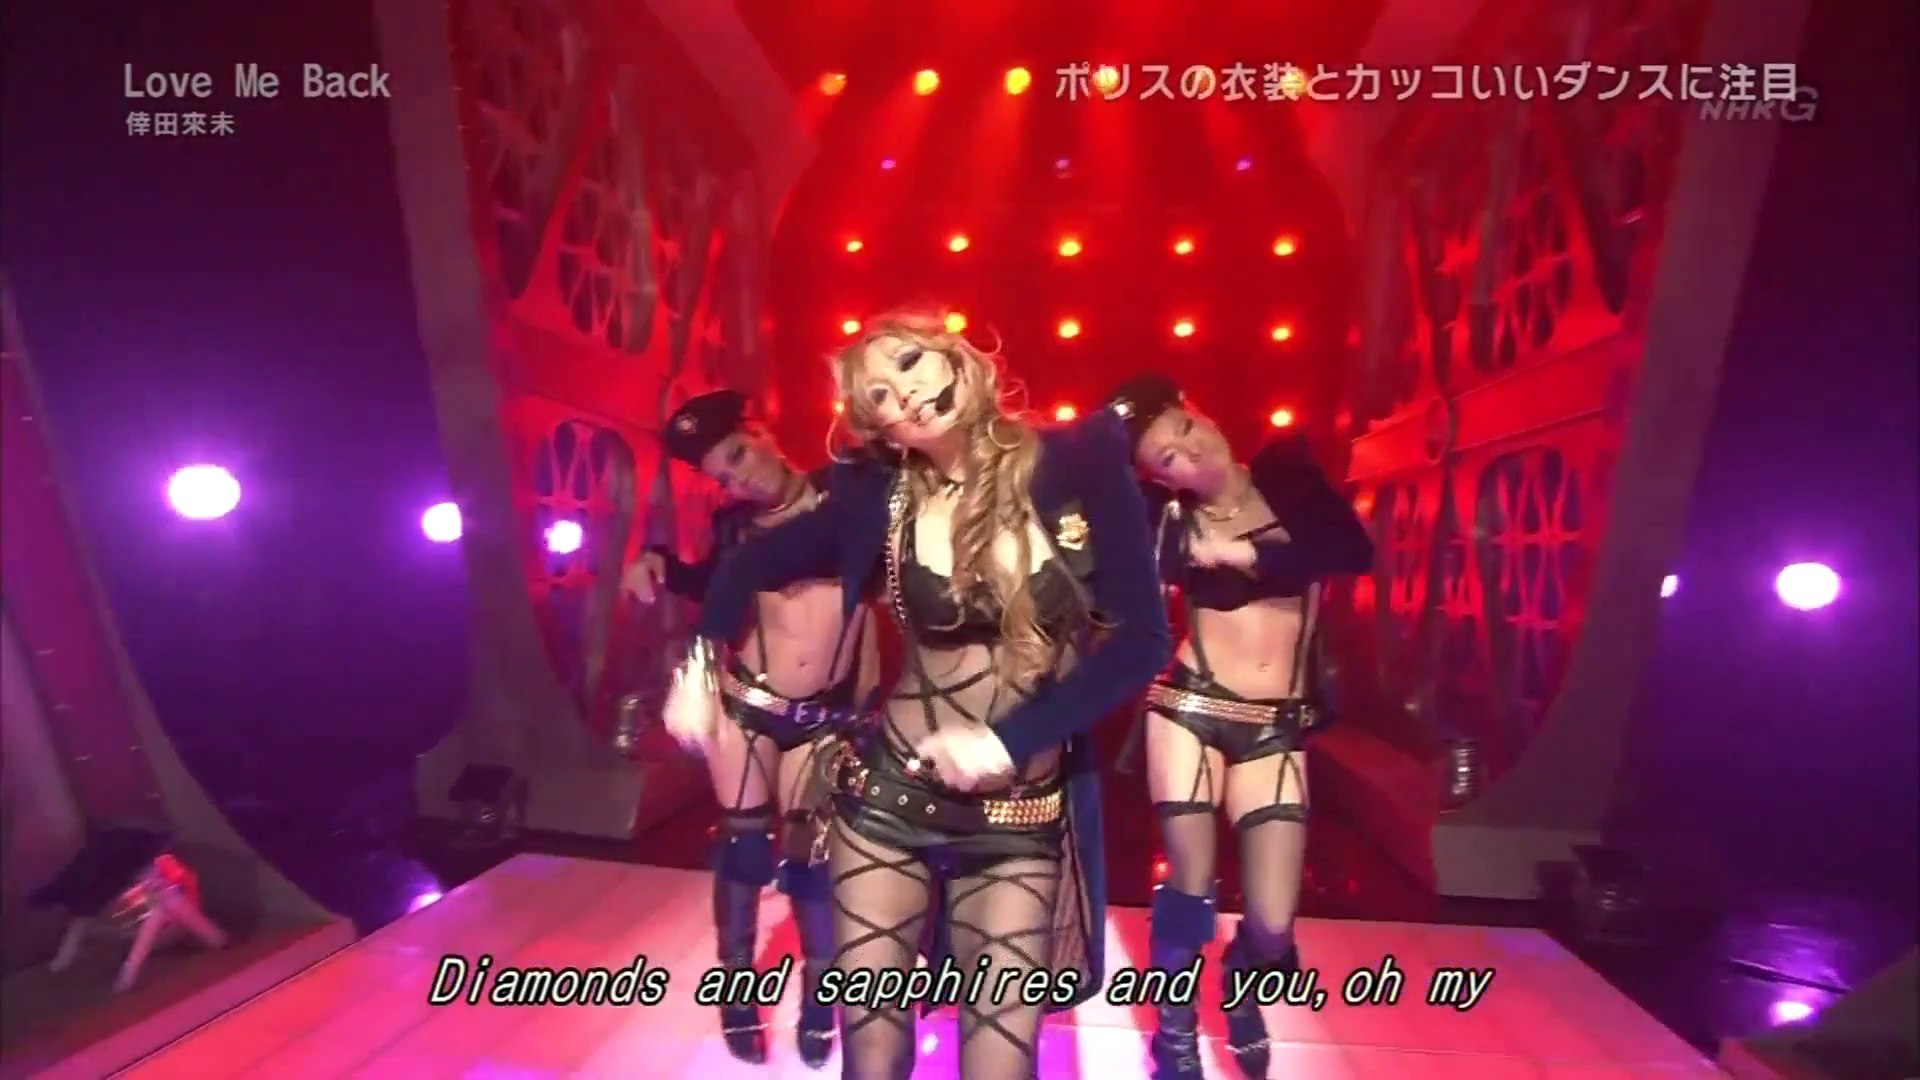 Koda Kumi Live Love Me Back Video Dailymotion